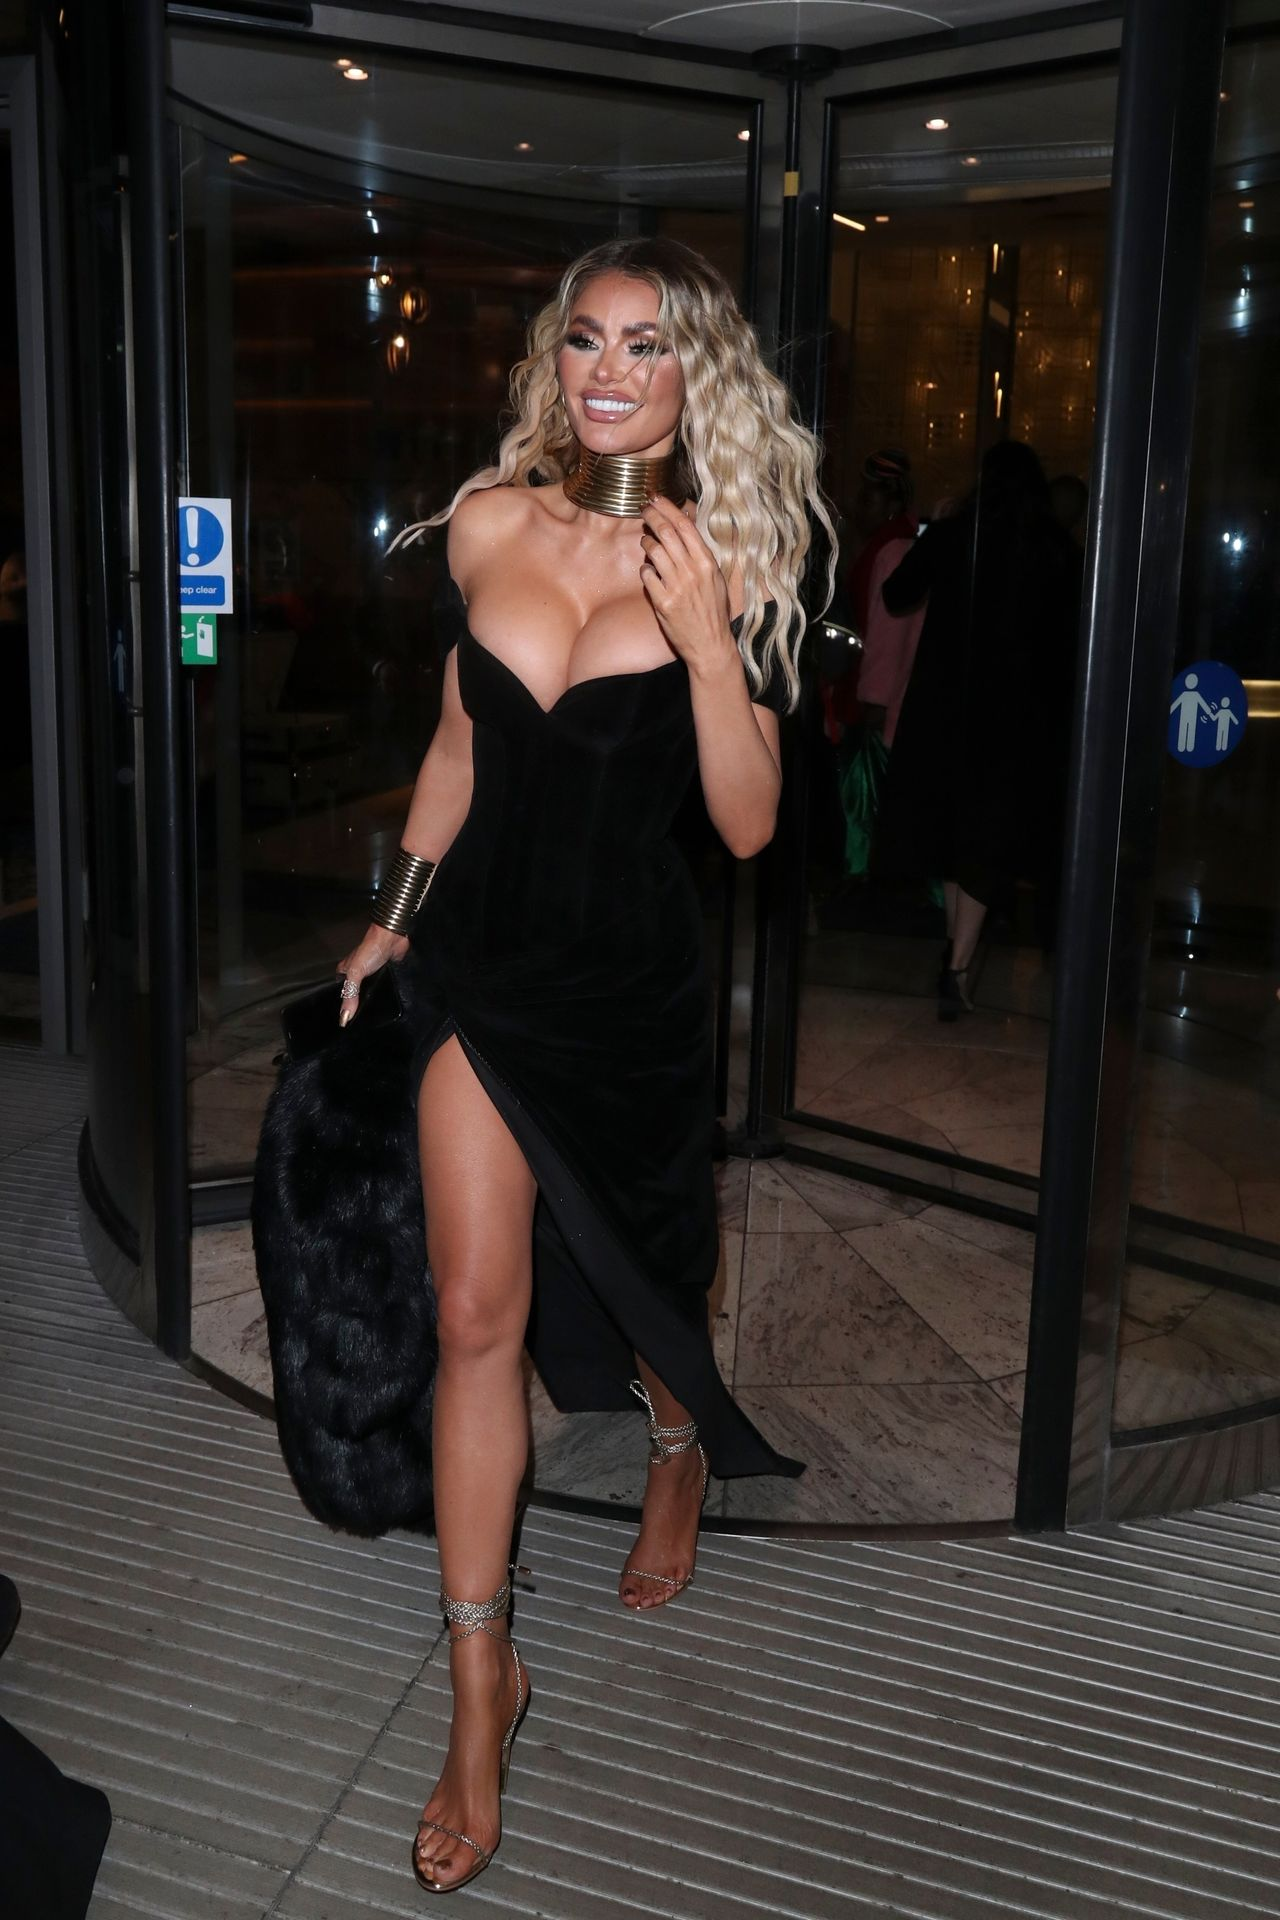 Chloe Sims Shows Off Her Boobs At The Nta Afterparty In London 0011